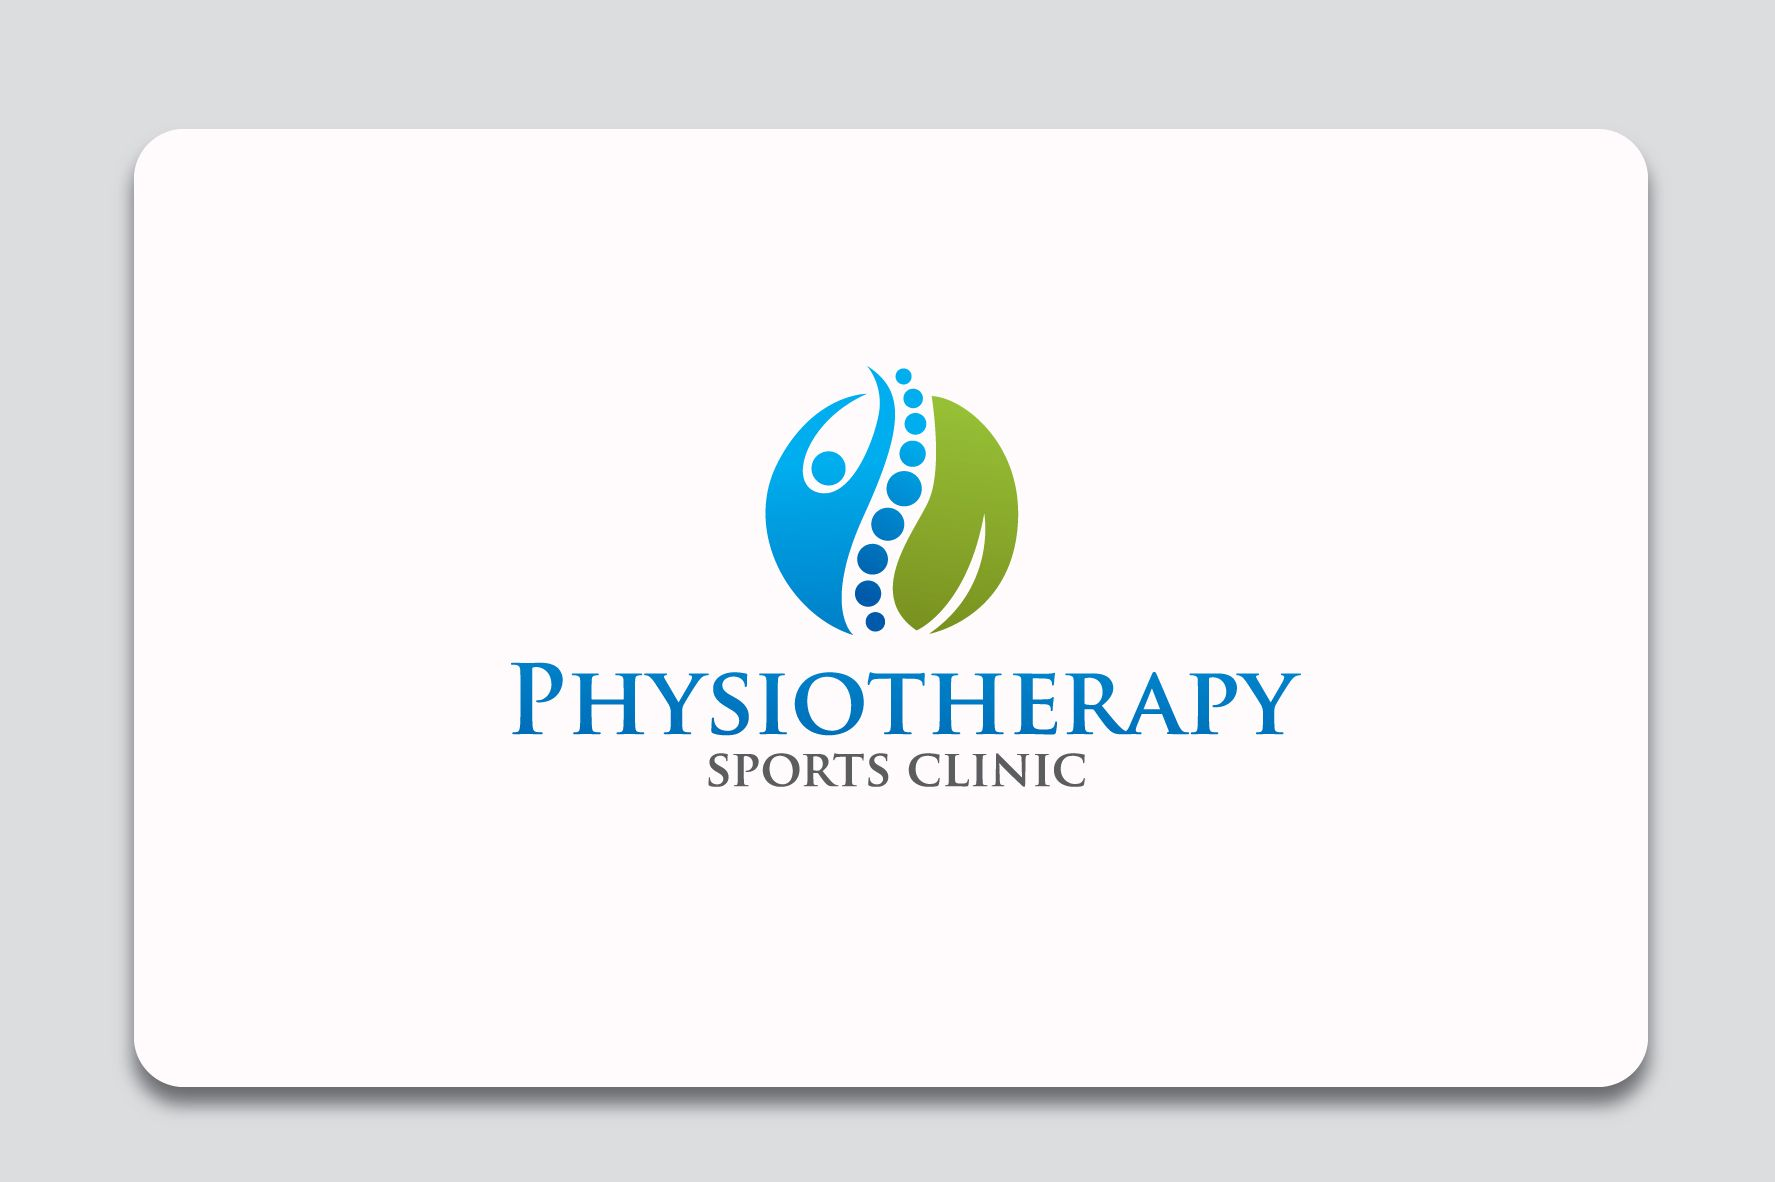 physiotherapy sports clinic logo graphic design